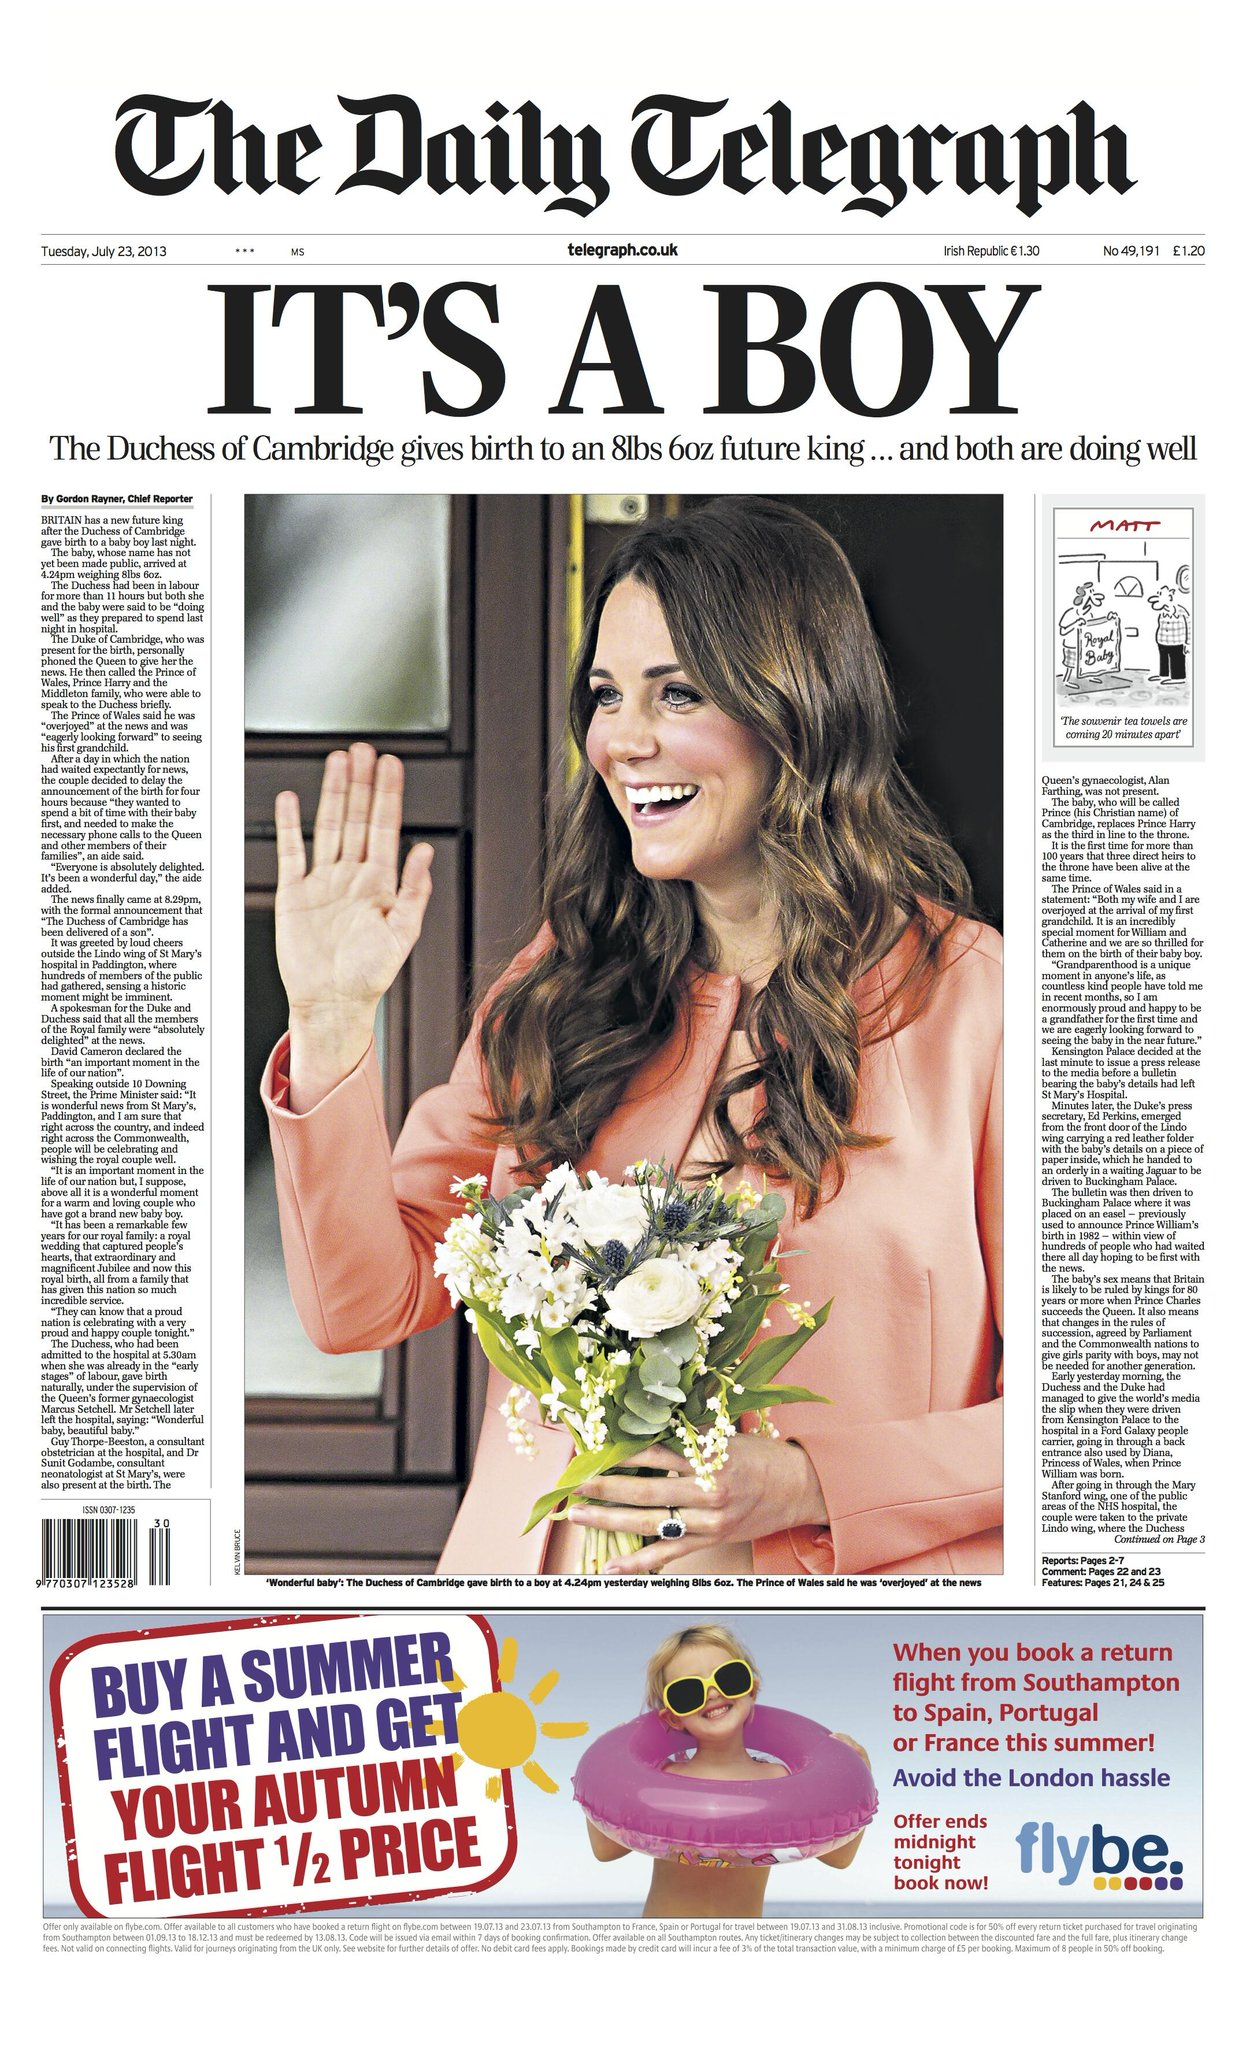 This is the front page of The Telegraph tomorrow http://t.co/IIhSCHfz4C